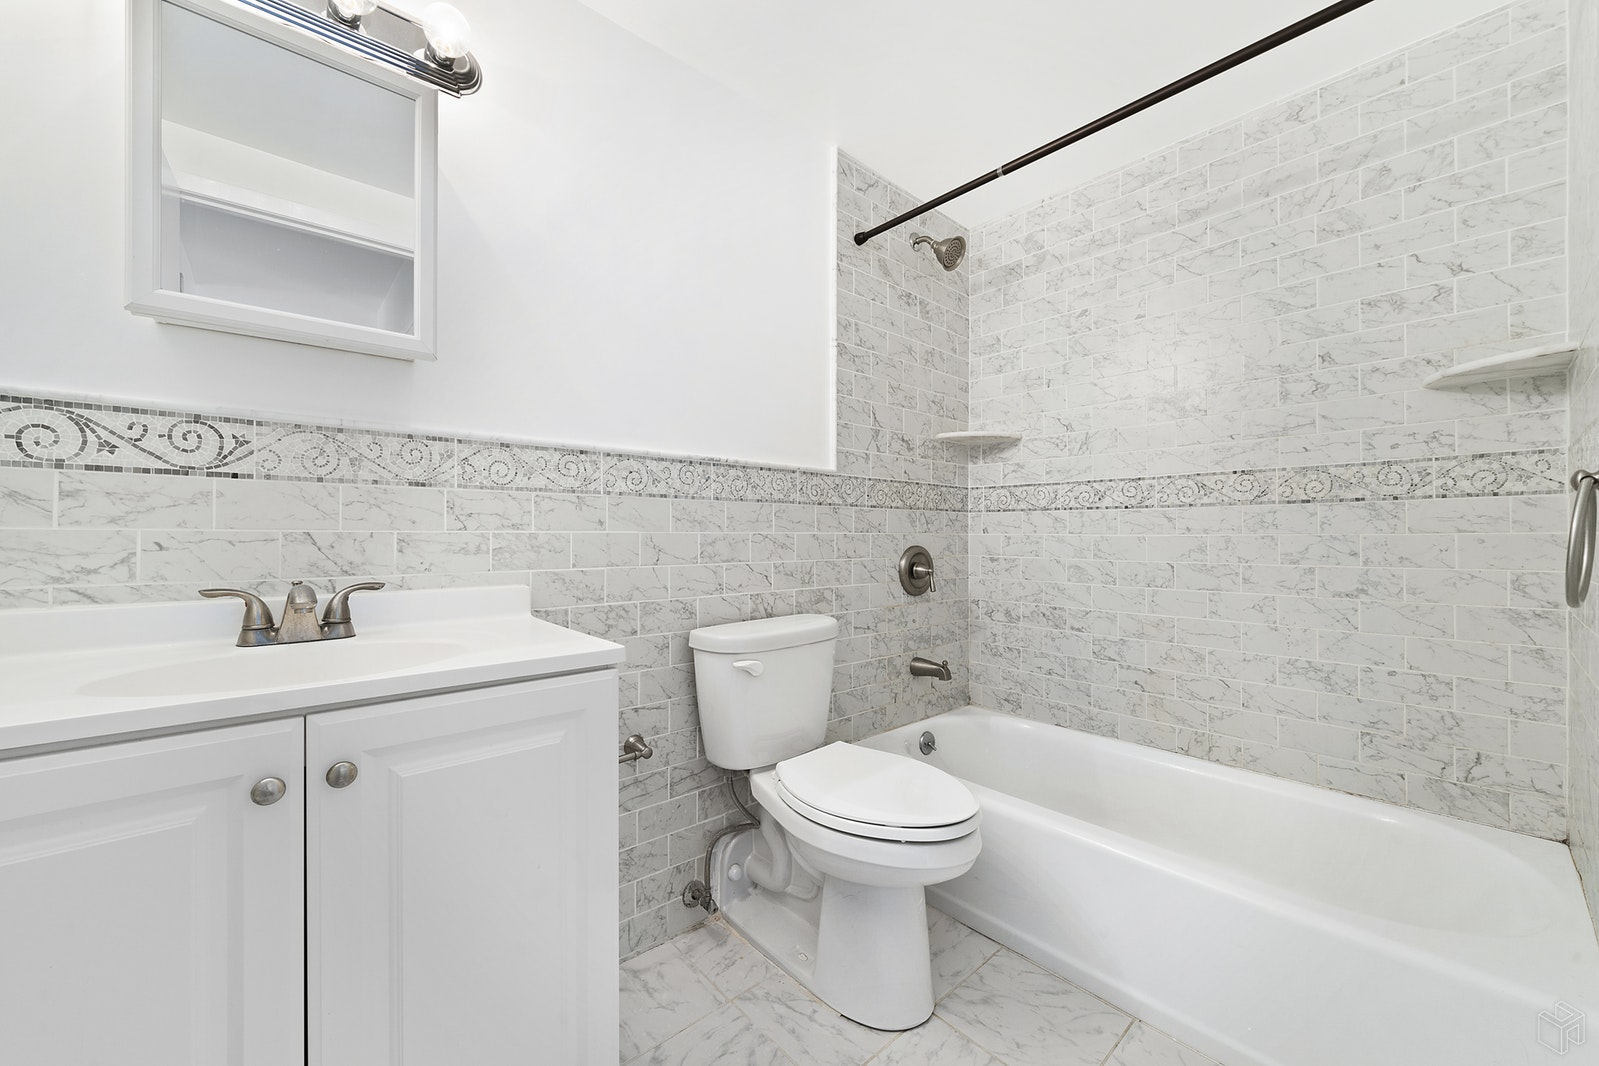 H-U-G-E 3 Br W/ Ultra Low CC'S & Taxes, Upper Manhattan, NYC, 10030, $1,249,000, Property For Sale, Halstead Real Estate, Photo 5